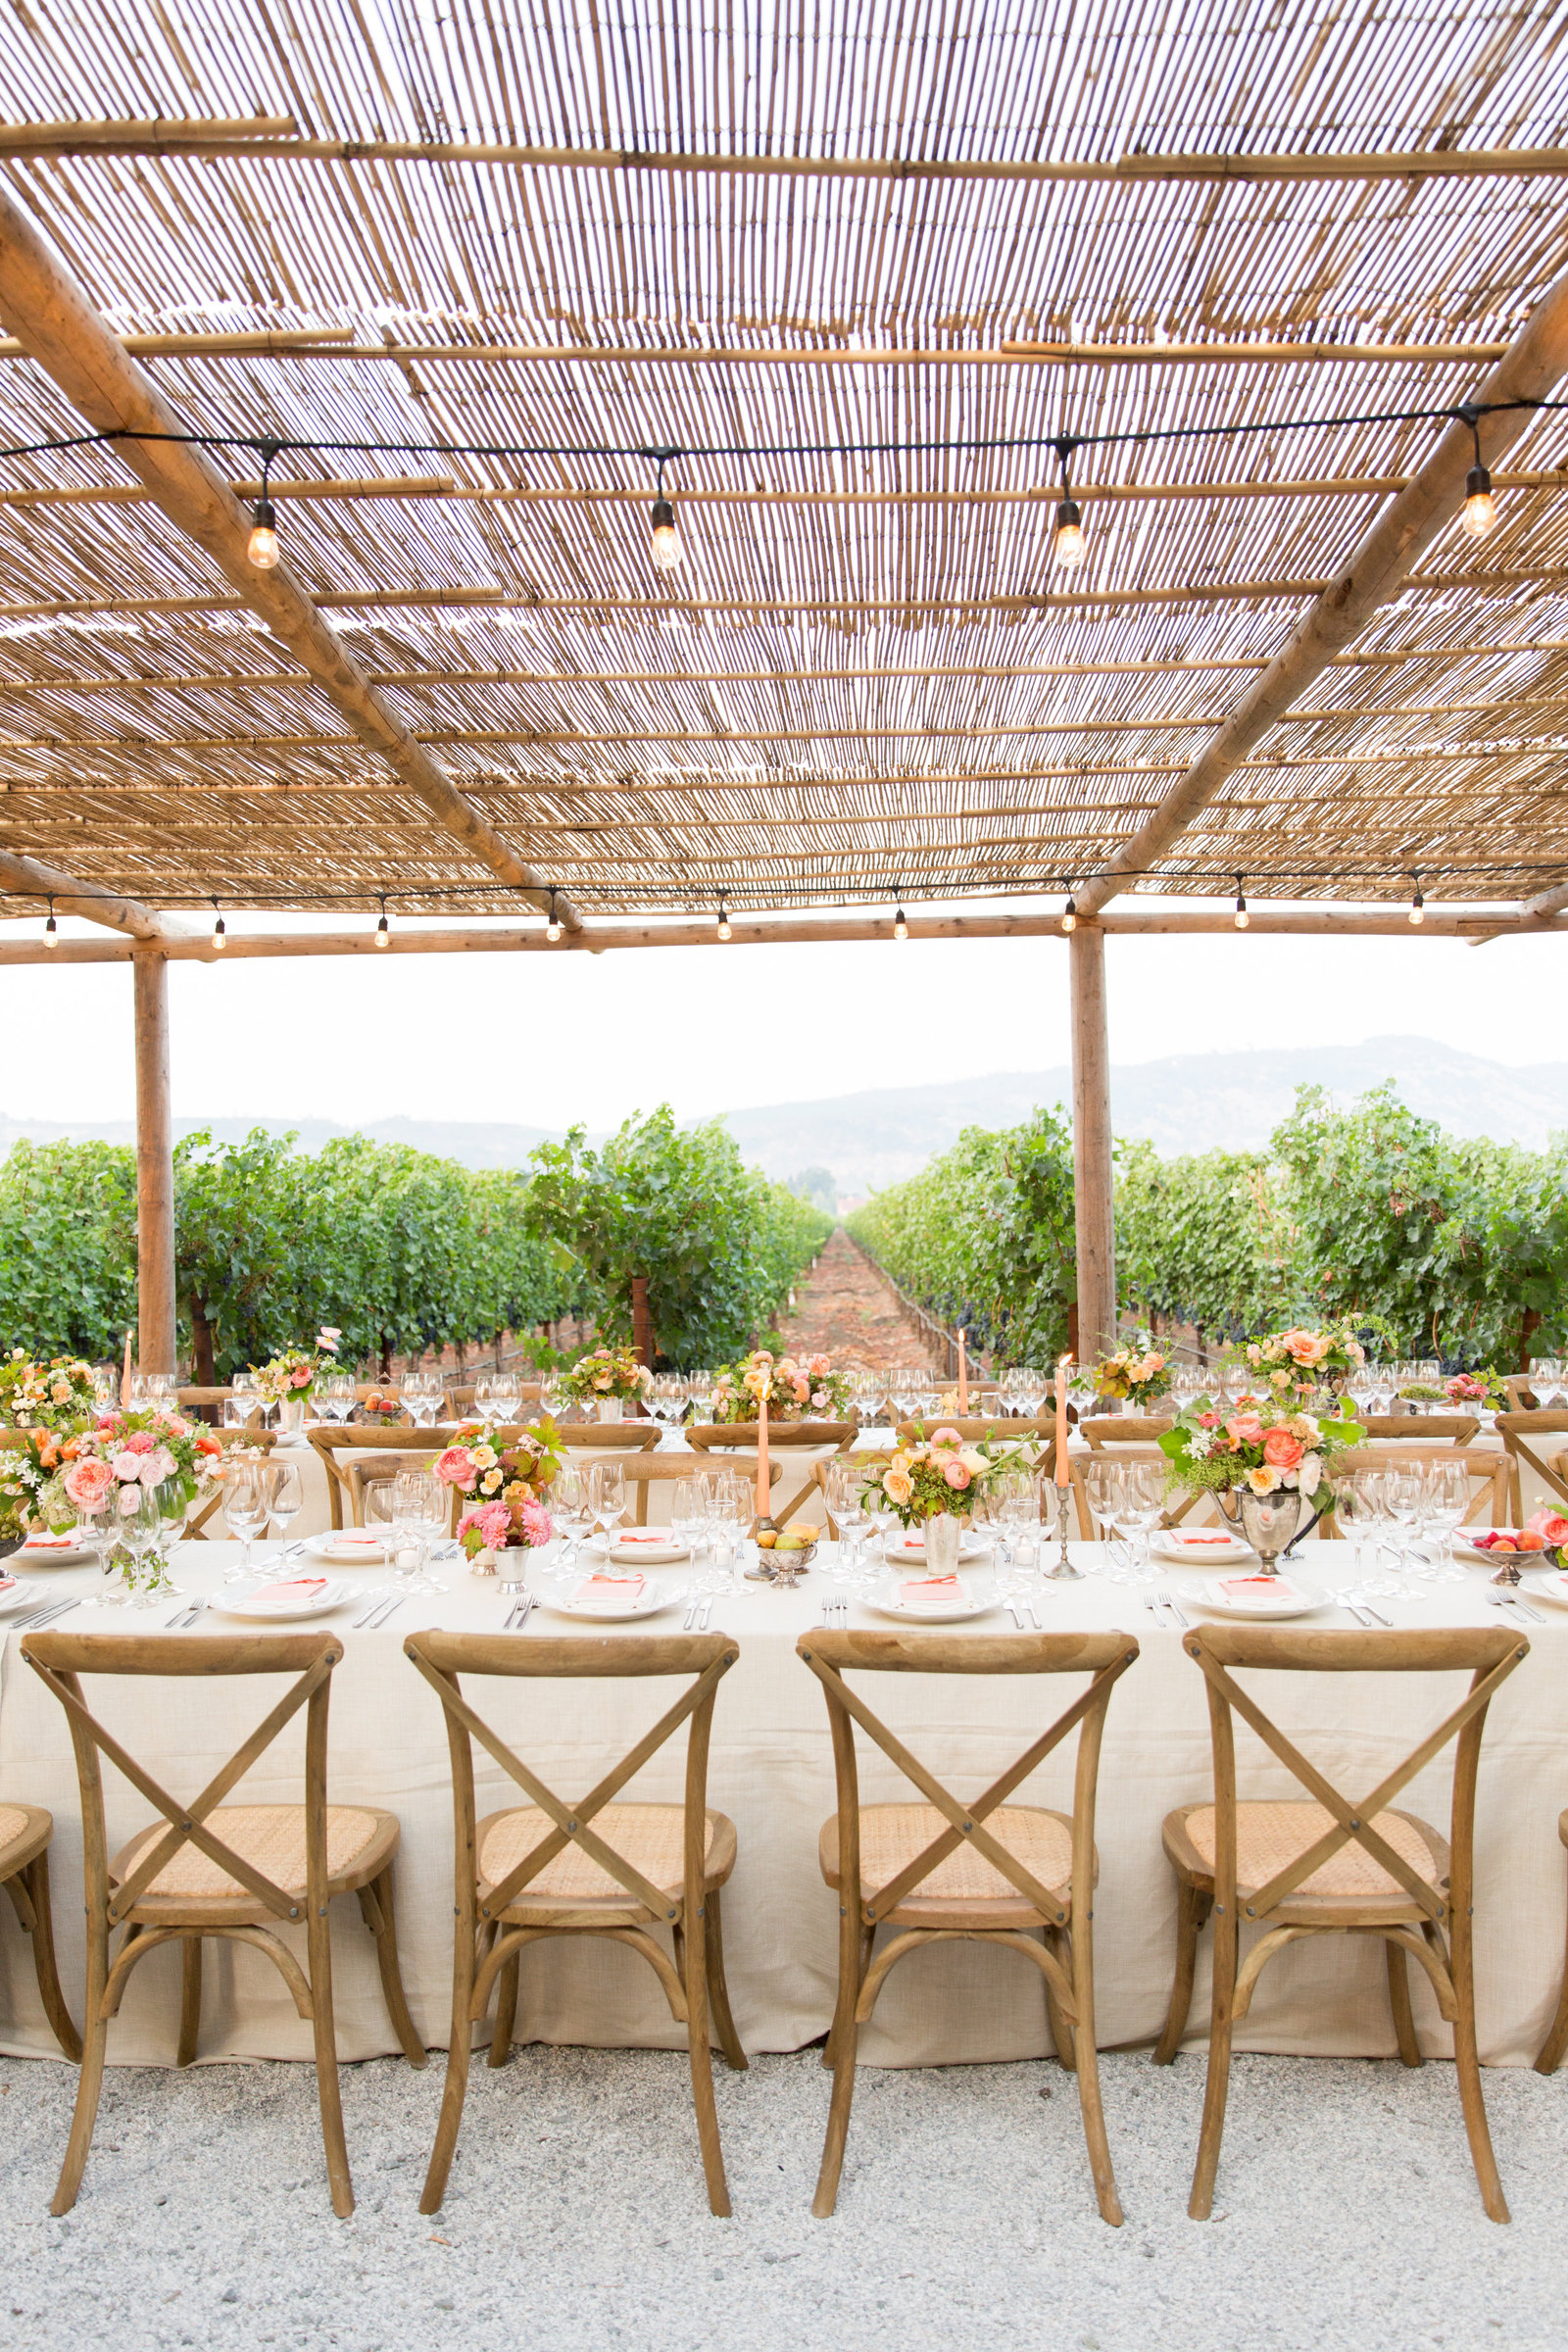 Wedding welcome dinner by Jenny Schneider Events at Round Pond Estate in Napa Valley, California. Photo by Eric Kelley Photography.